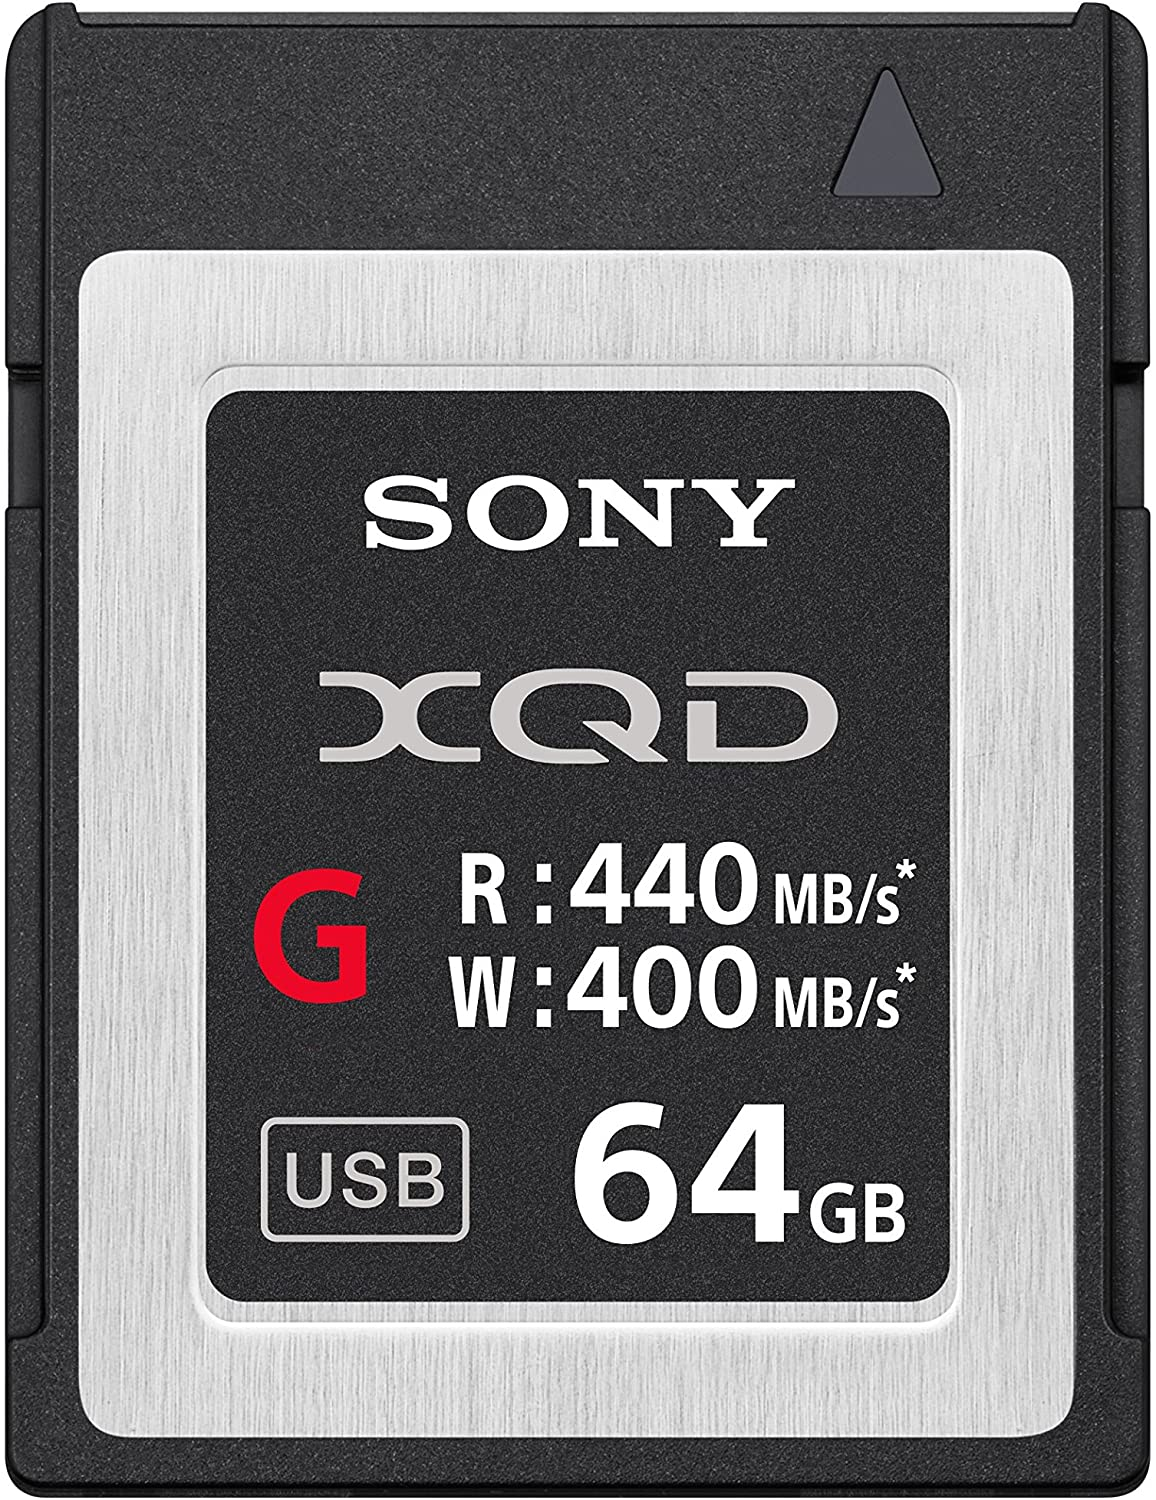 Close-up photo of the Sony memory card with specs written on it